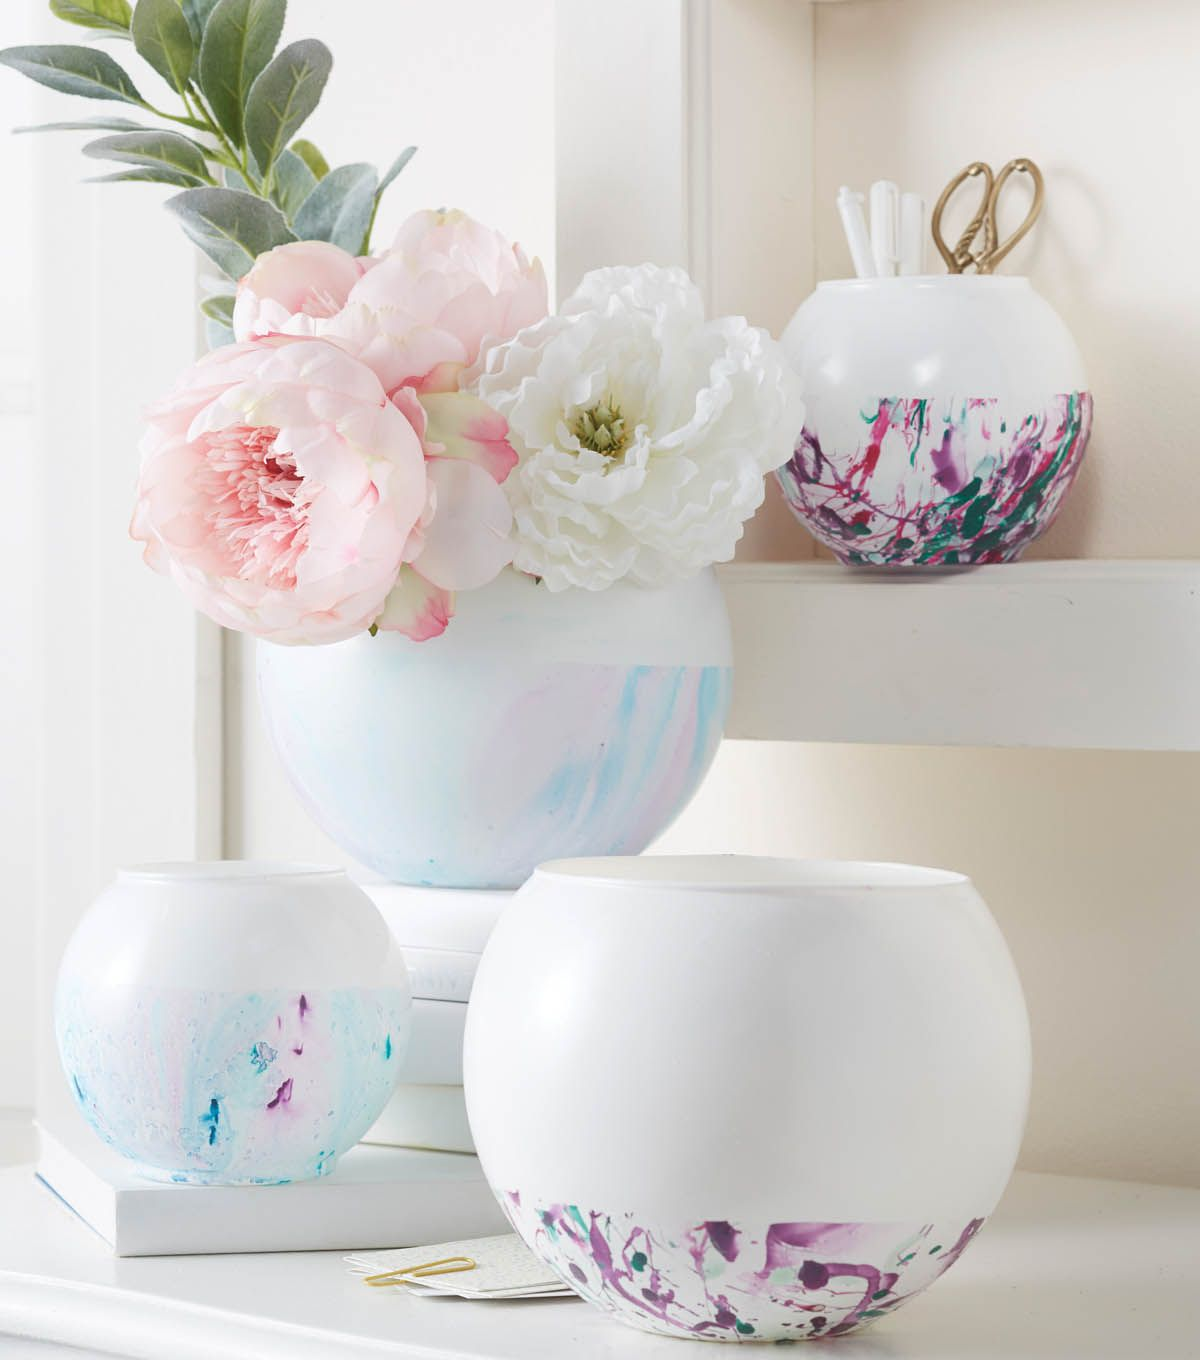 Home Design Gift Ideas: DIY Mother's Day Crafts